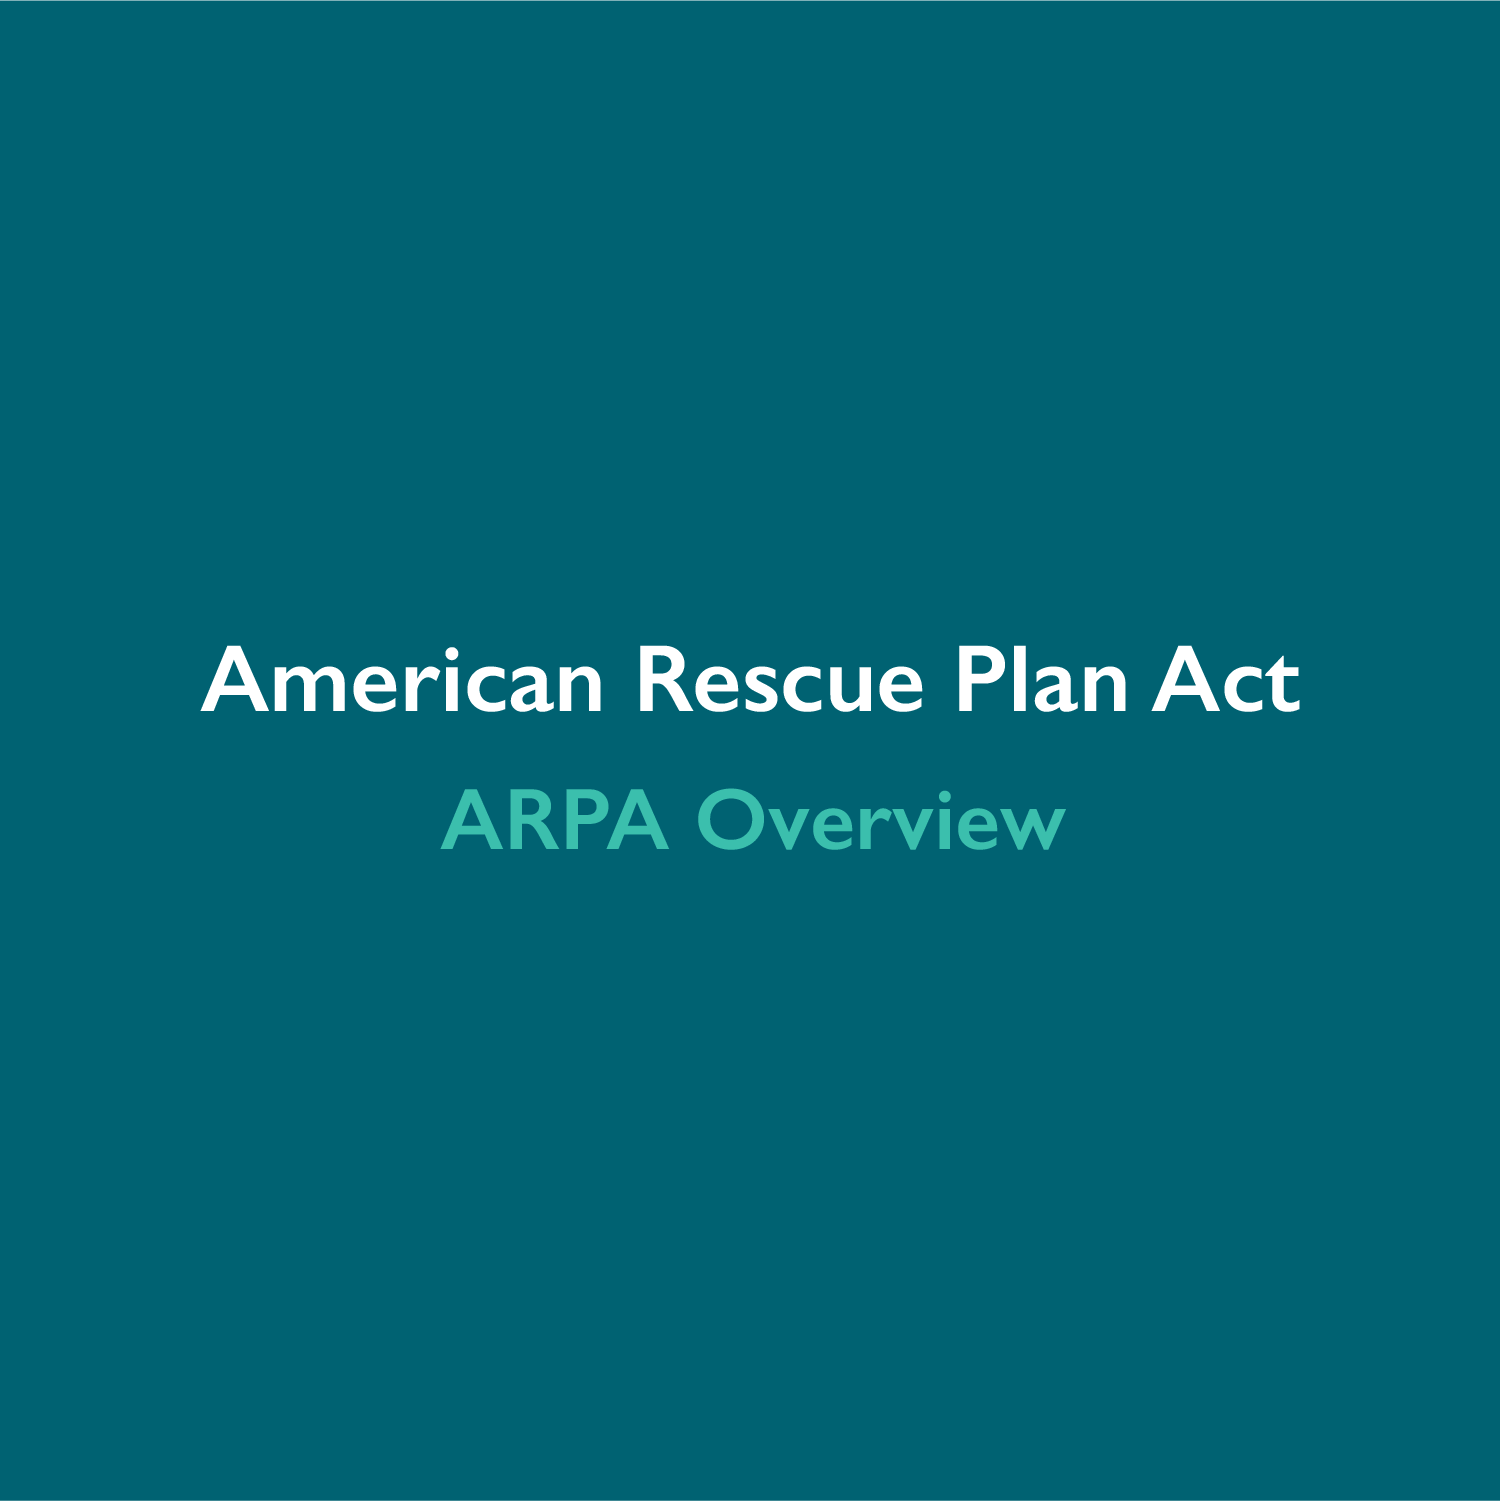 The American Rescue Plan Act has passed: What's in it for you?